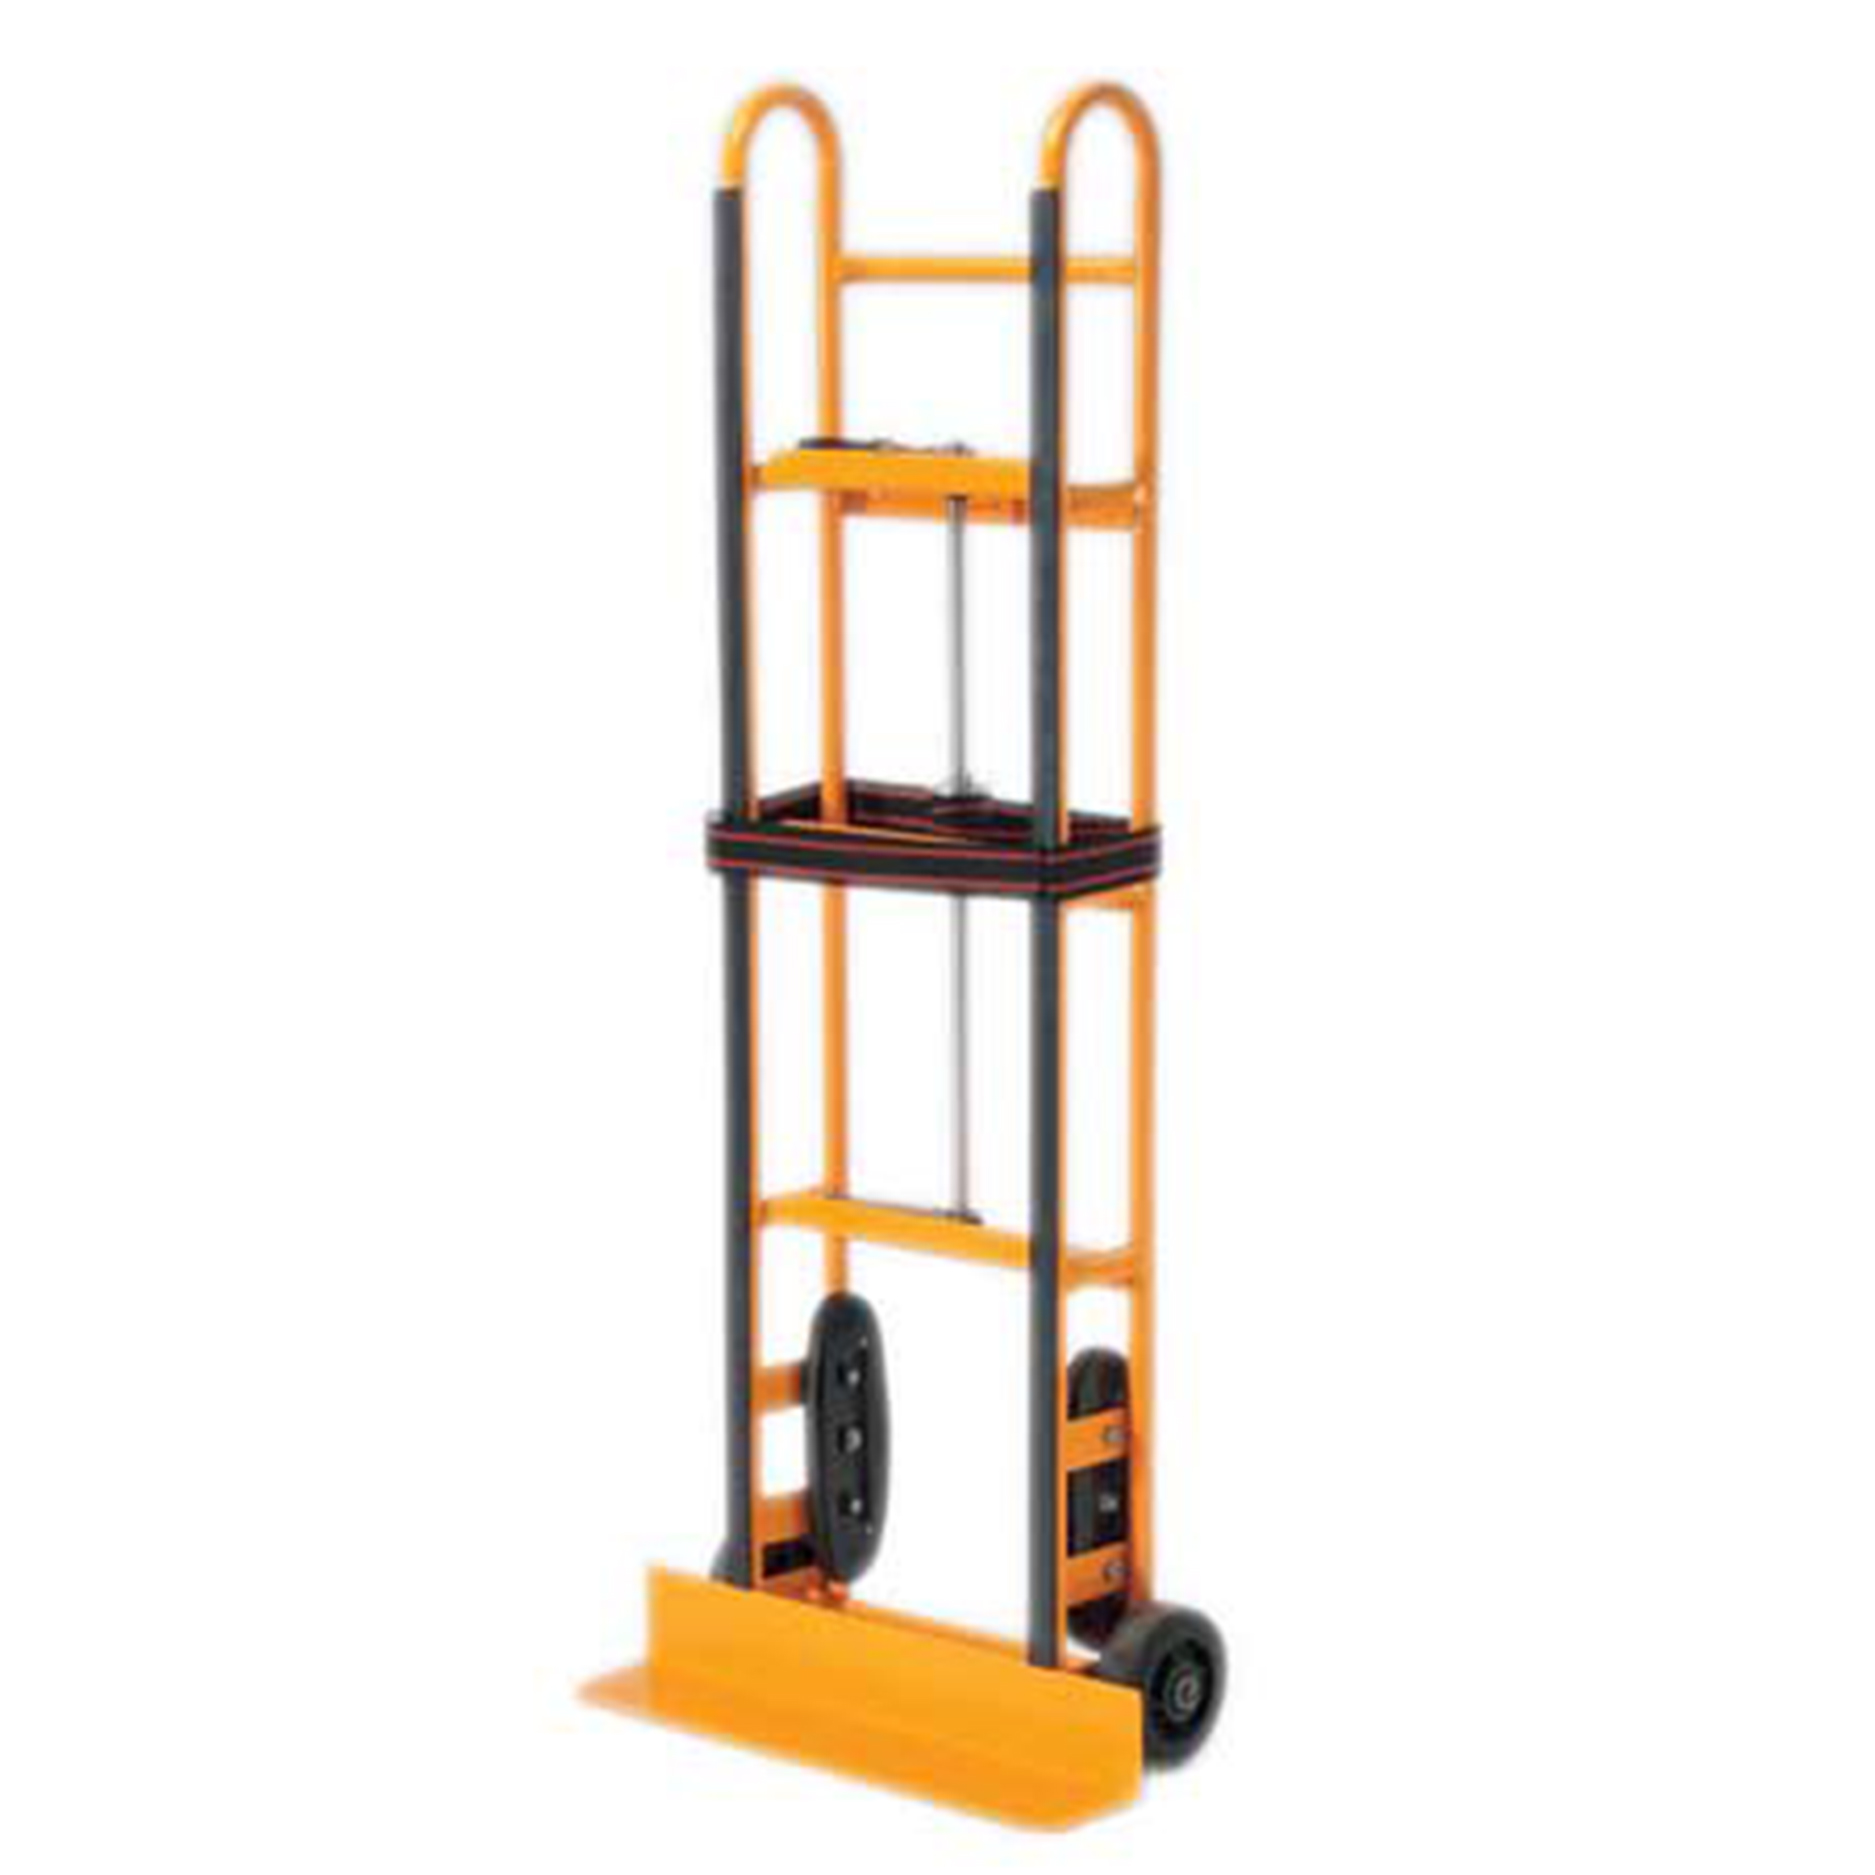 Appliance dollie ace rents inc for Home depot rent furniture dolly